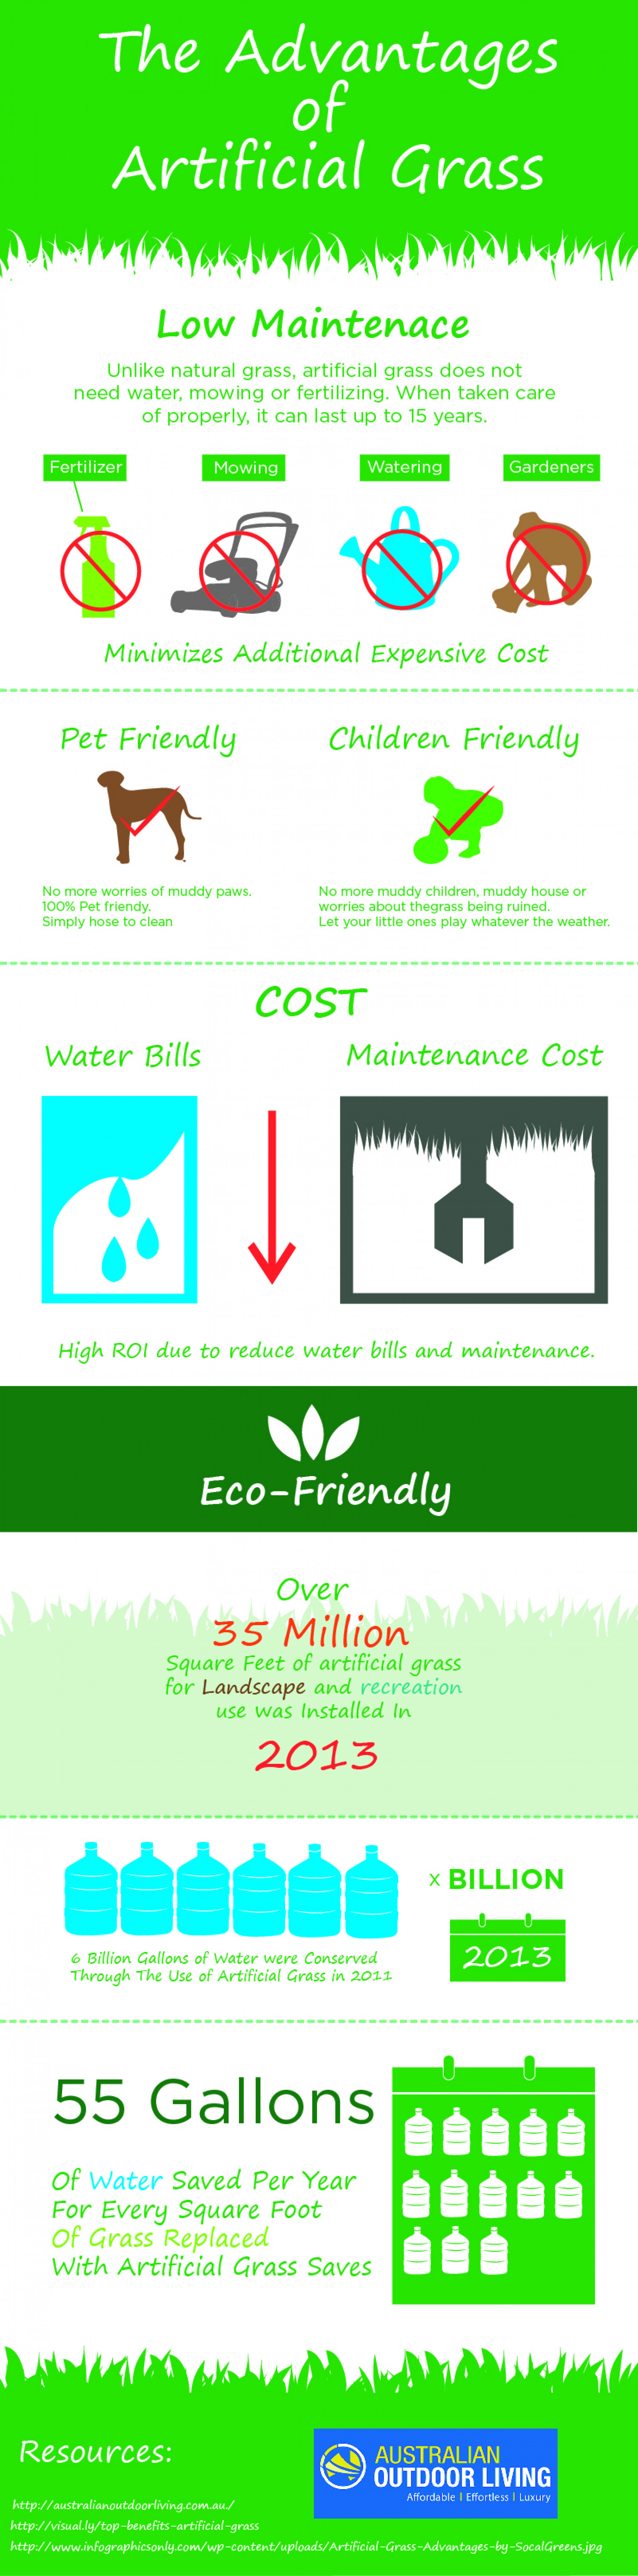 The Advantages of Artificial Grass Infographic